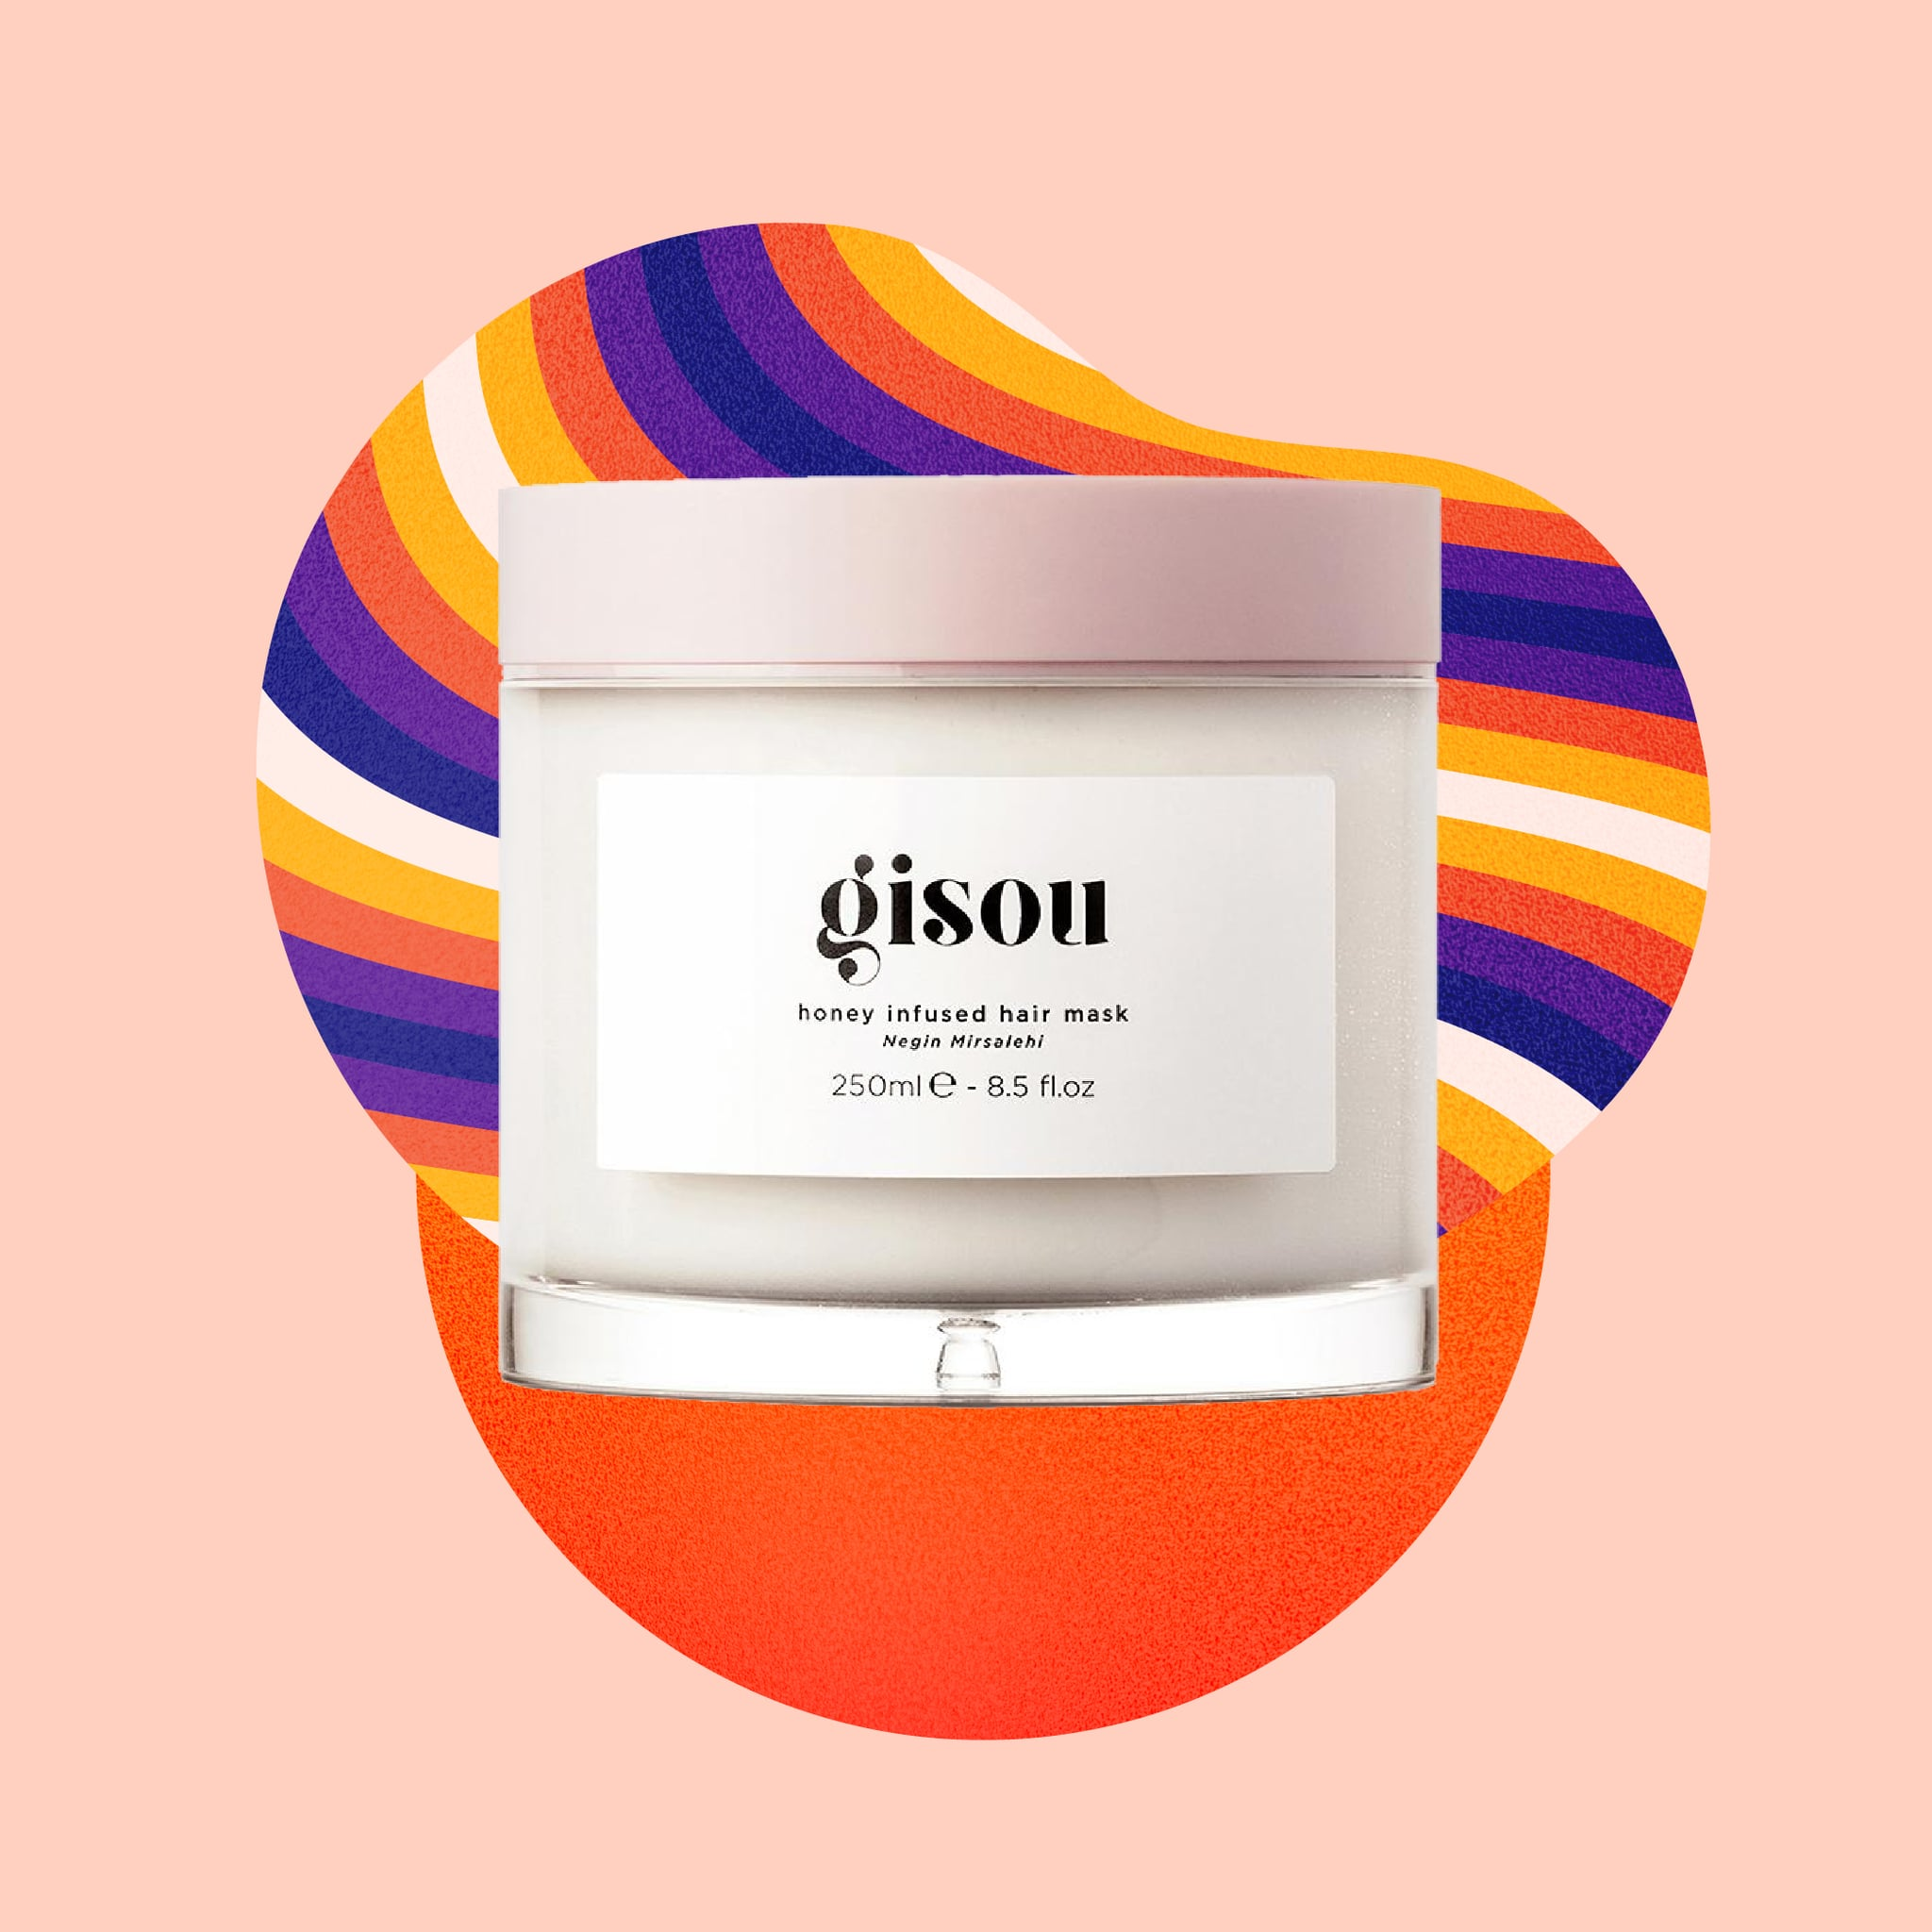 Gisou Honey Infused Hair Mask